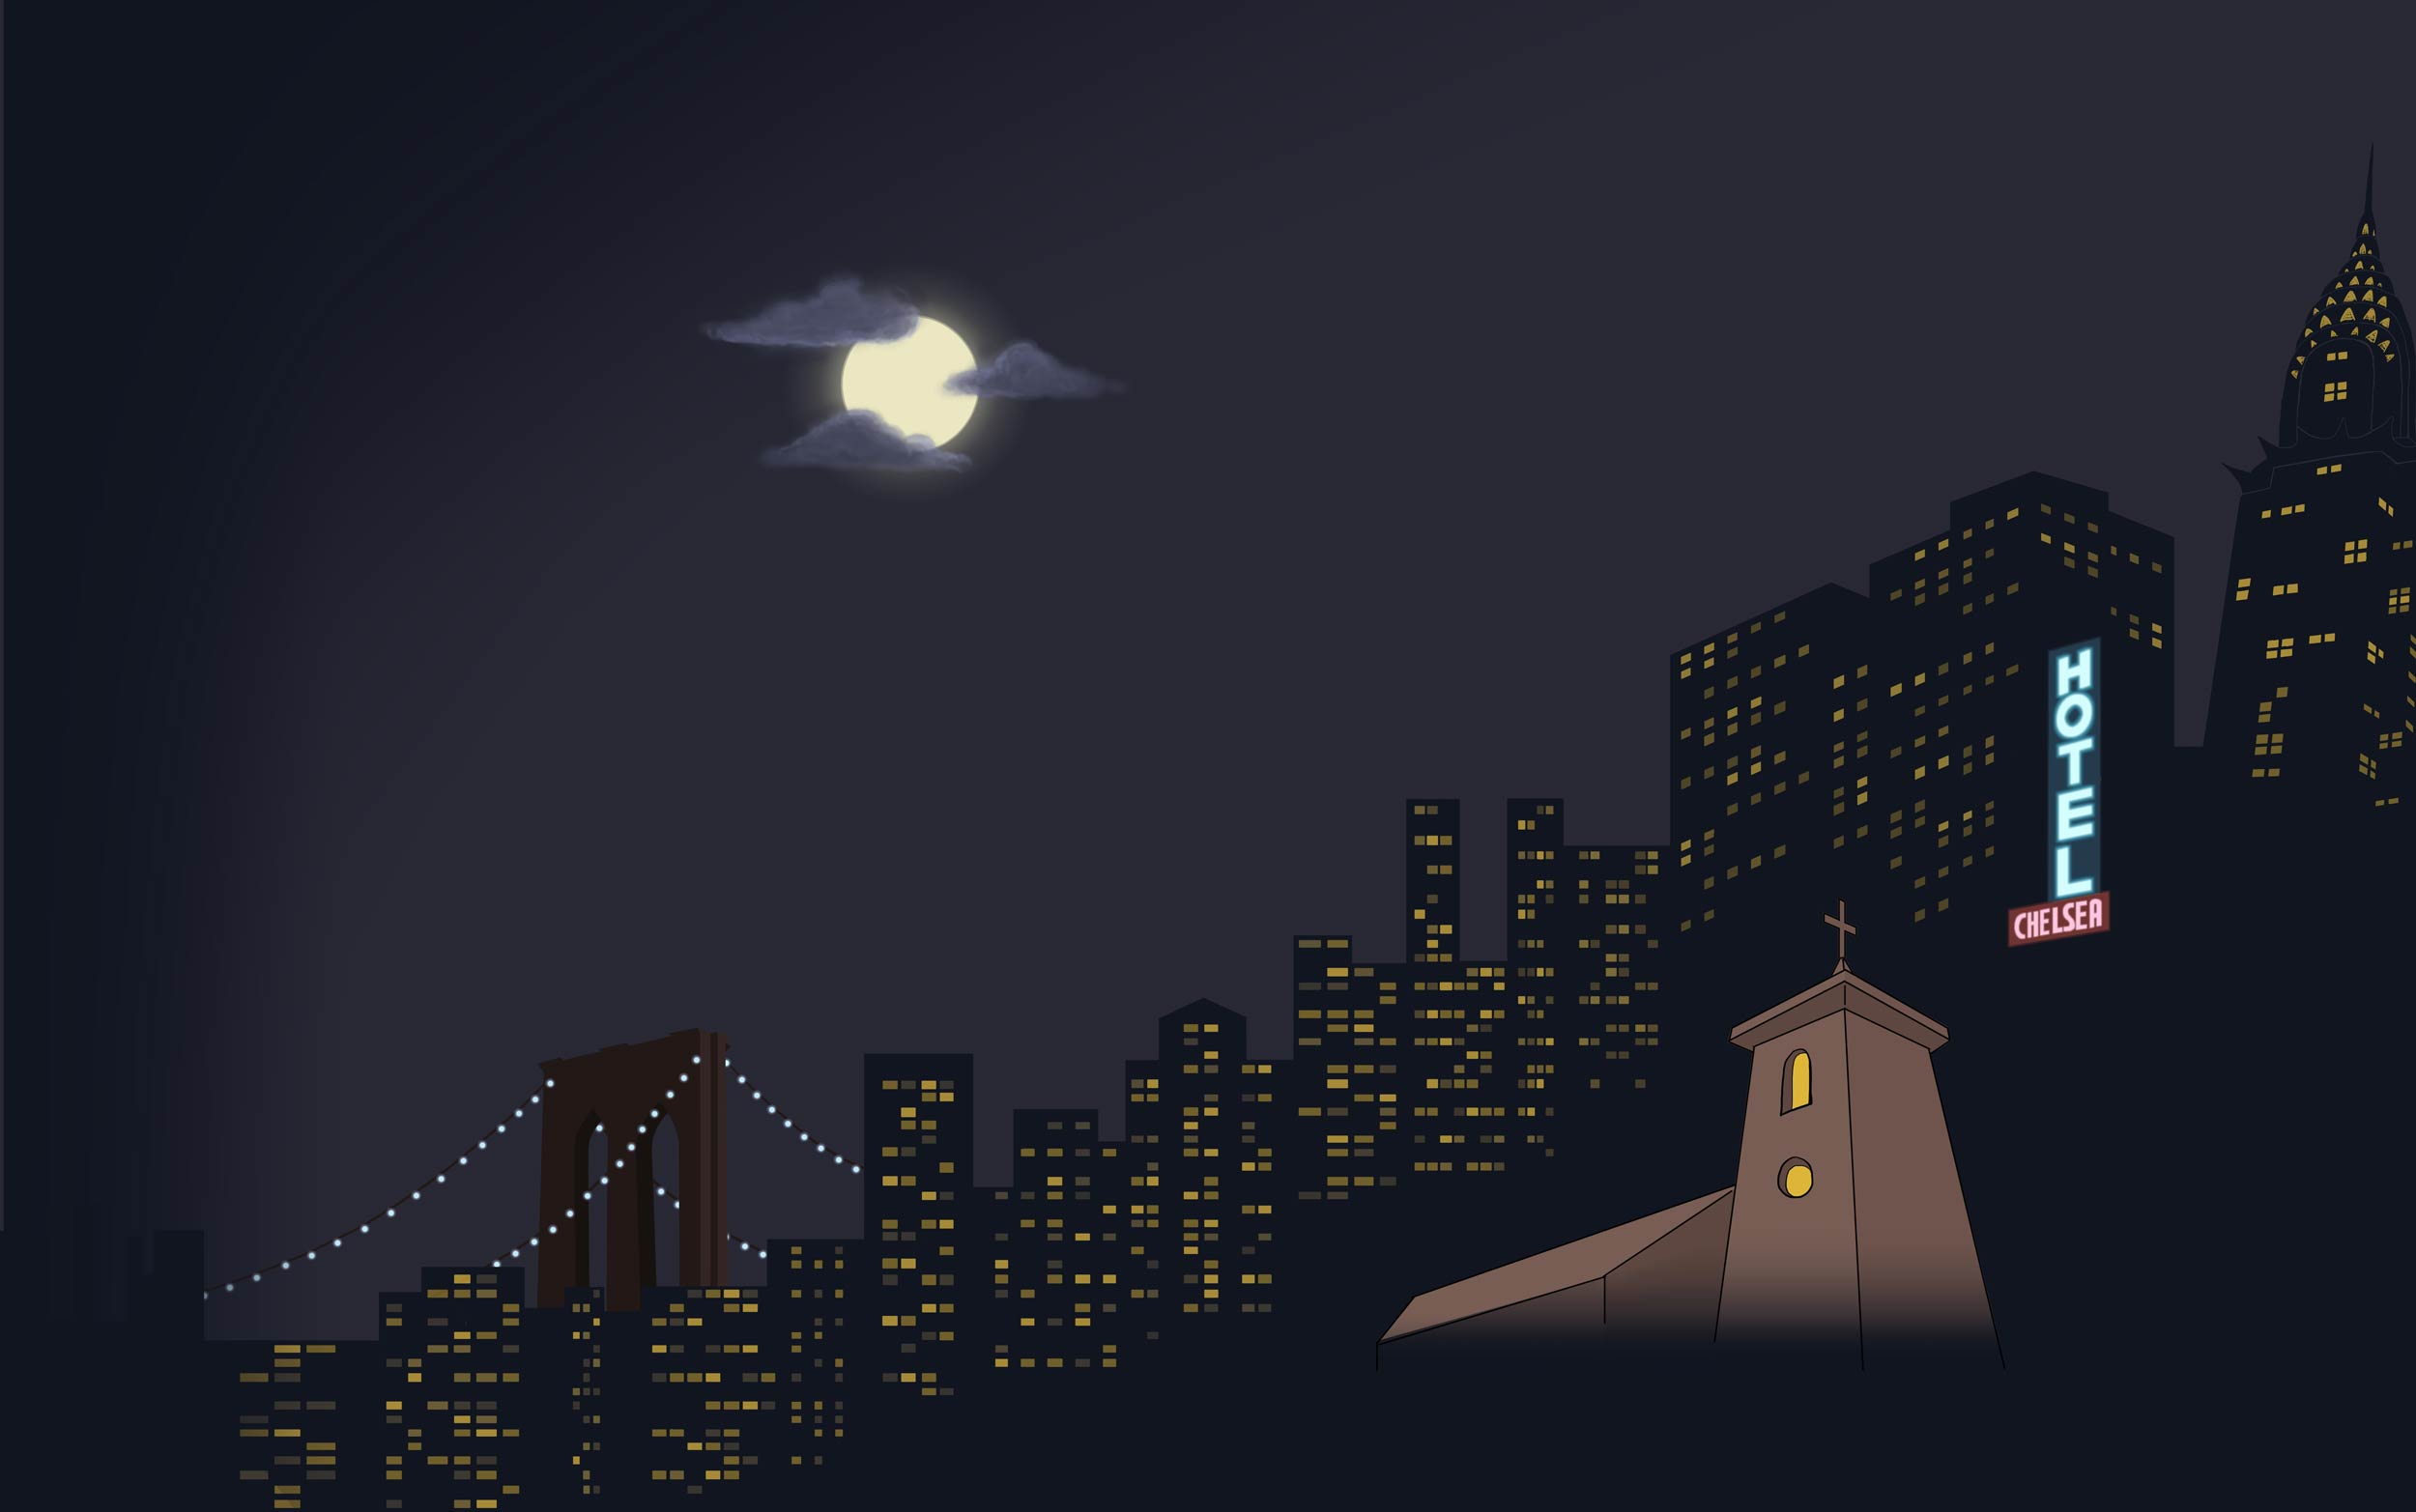 Bedazzled - moon over New York